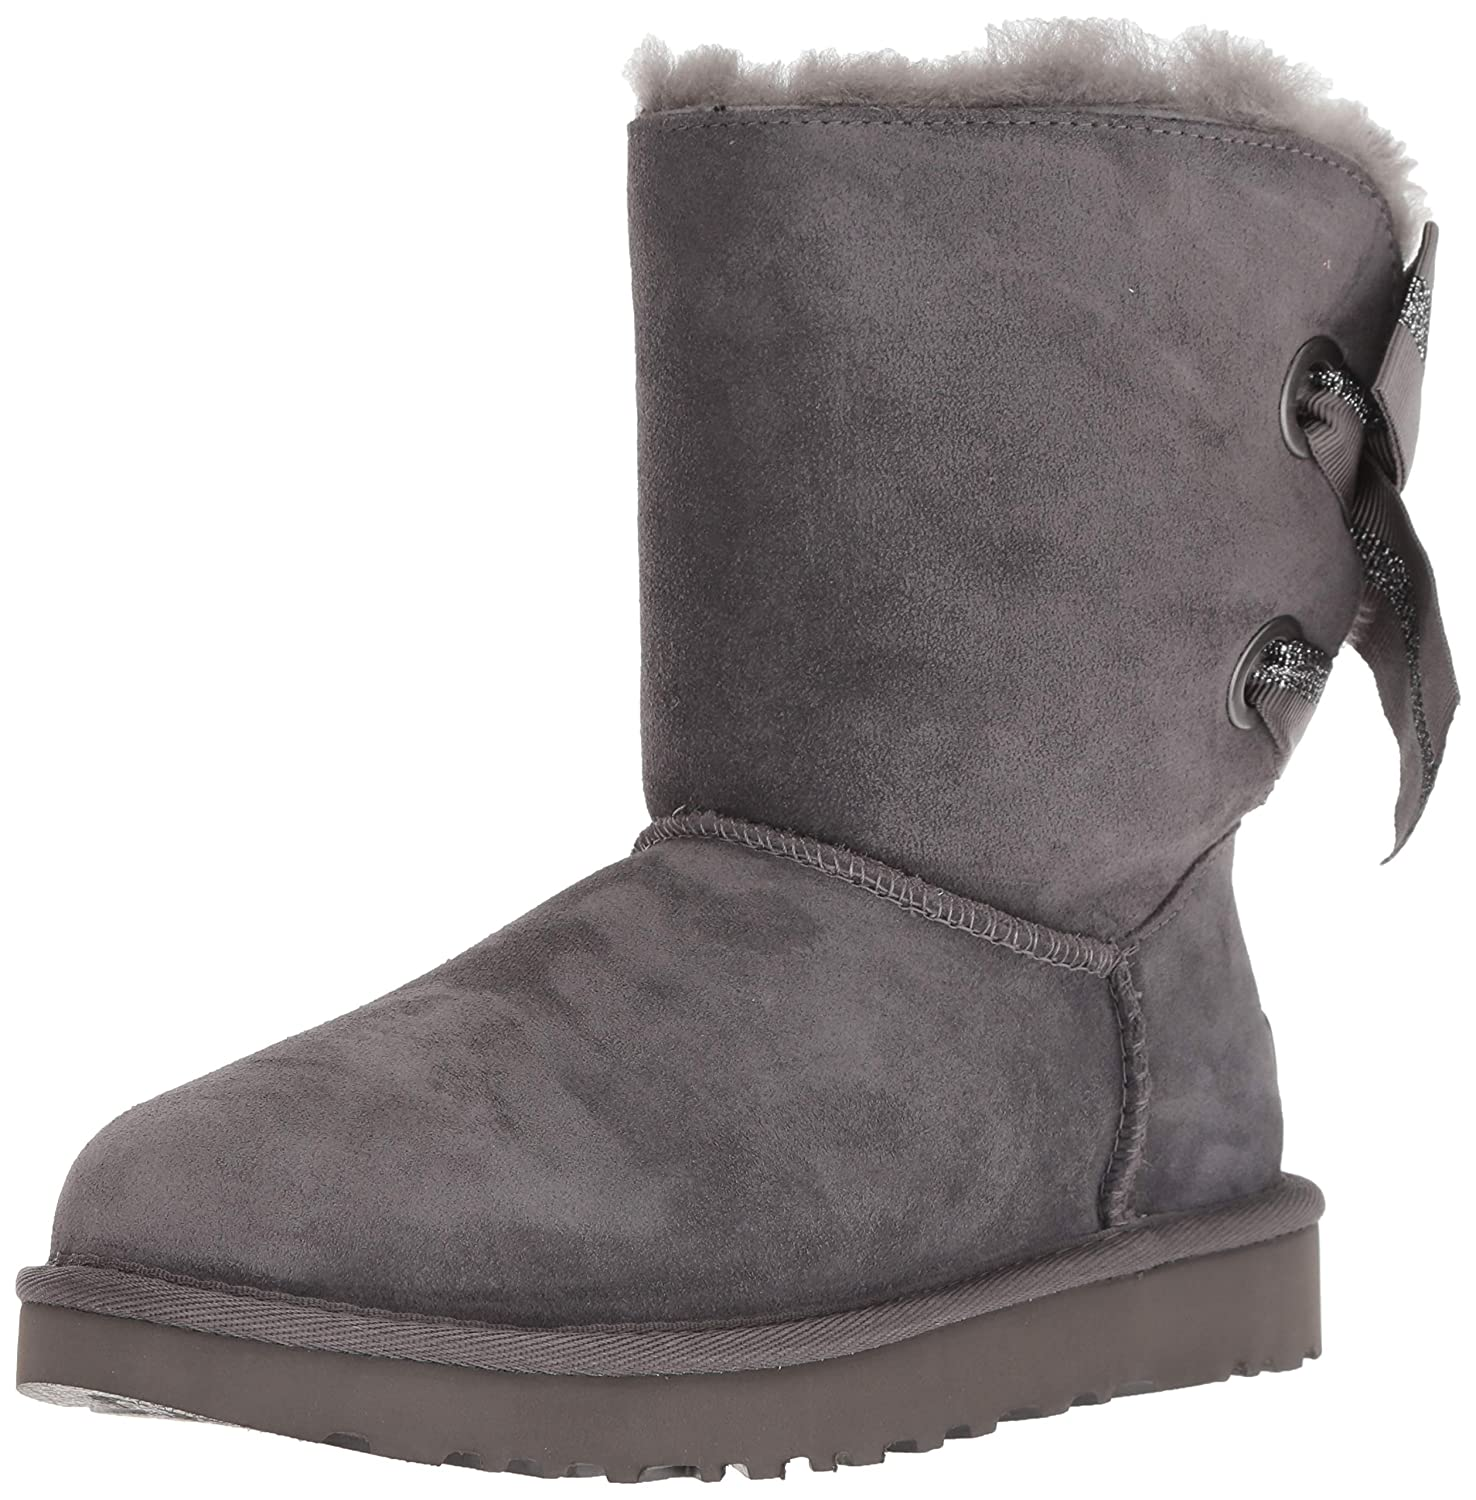 4020adb24b0 Amazon.com | UGG Women's W Customizable Bailey Bow Short Fashion ...